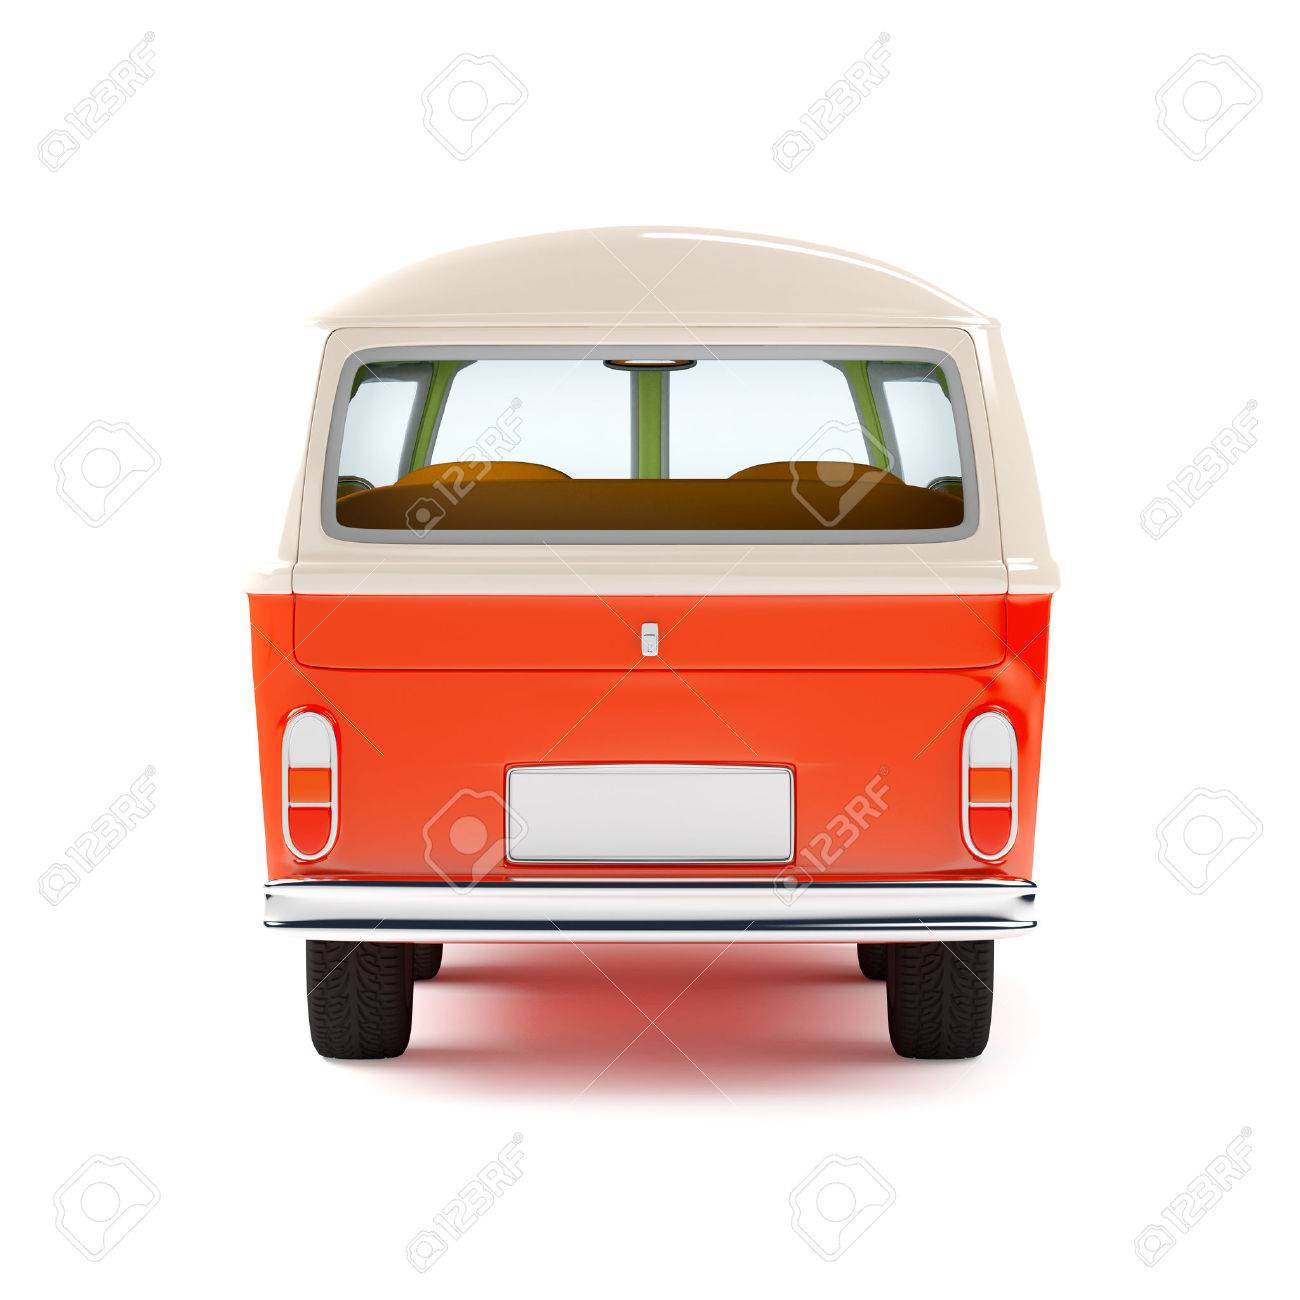 Retro Travel Van In Cartoon Style Back View Isolated On White Stock Photo Picture And Royalty Free Image Image 36623600